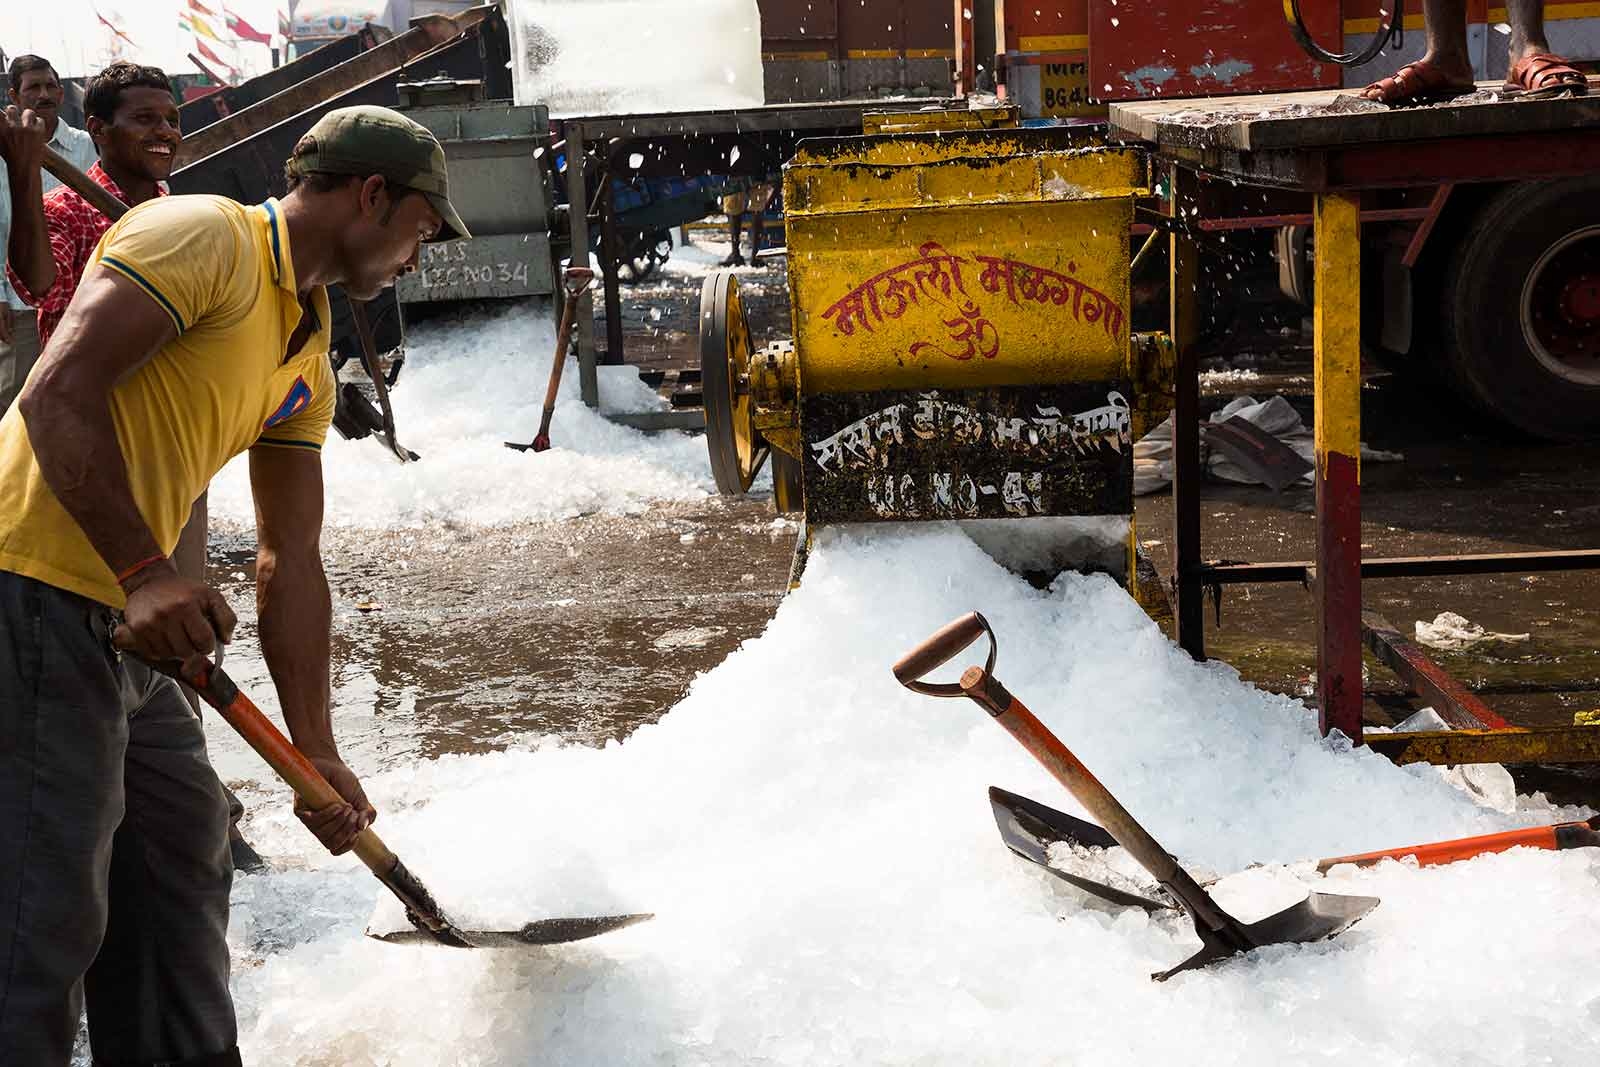 Where there's fresh fish, there needs to be crushed ice. While fish is unloaded off the boats, tons of ice is crushed to keep the fish fresh at the Sassoon Docks.